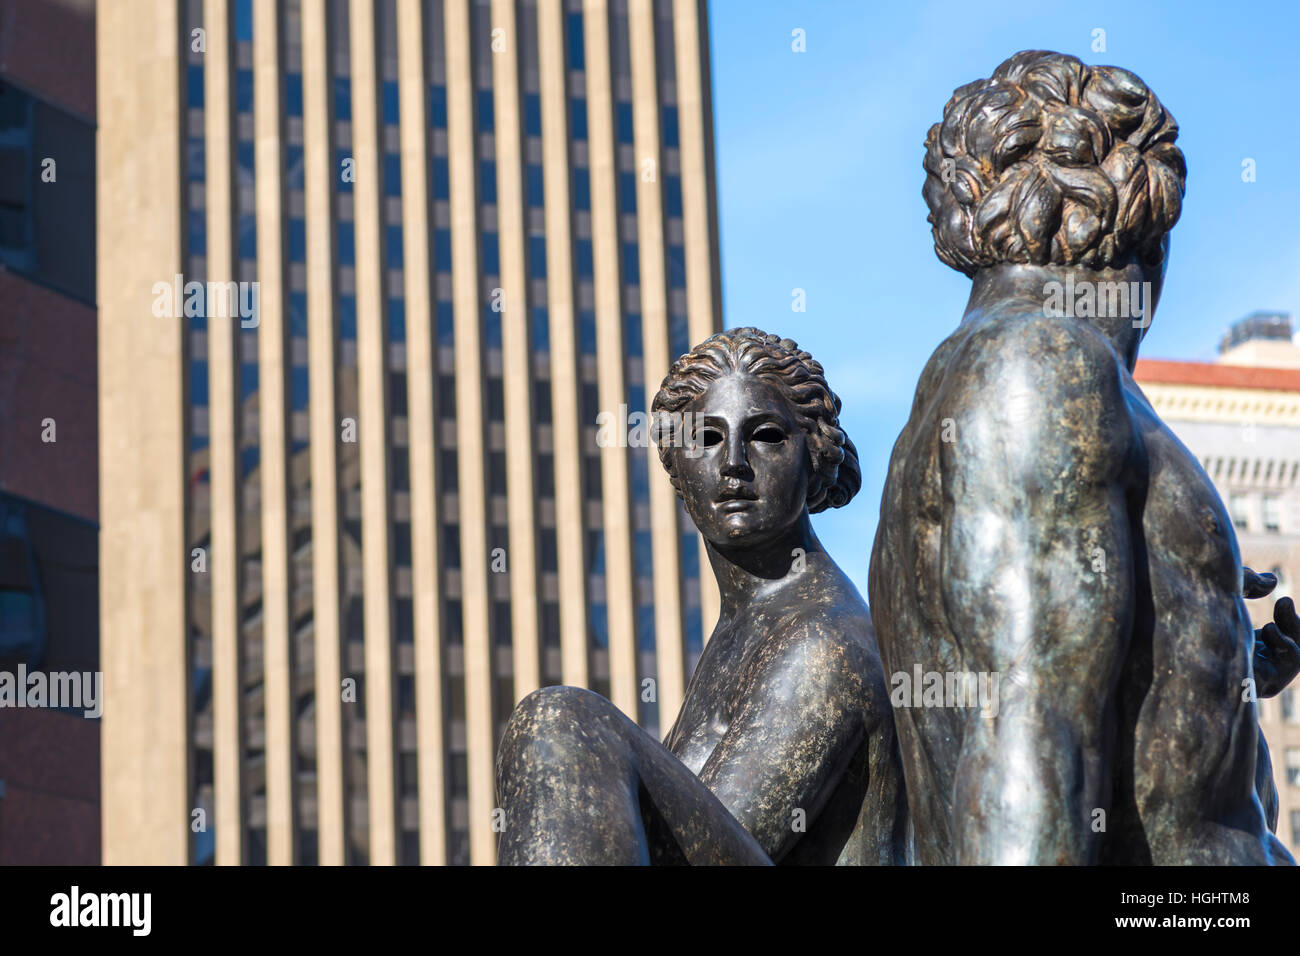 Fountain of Two Oceans sculpture and water fountain in downtown San Diego, California, USA. - Stock Image